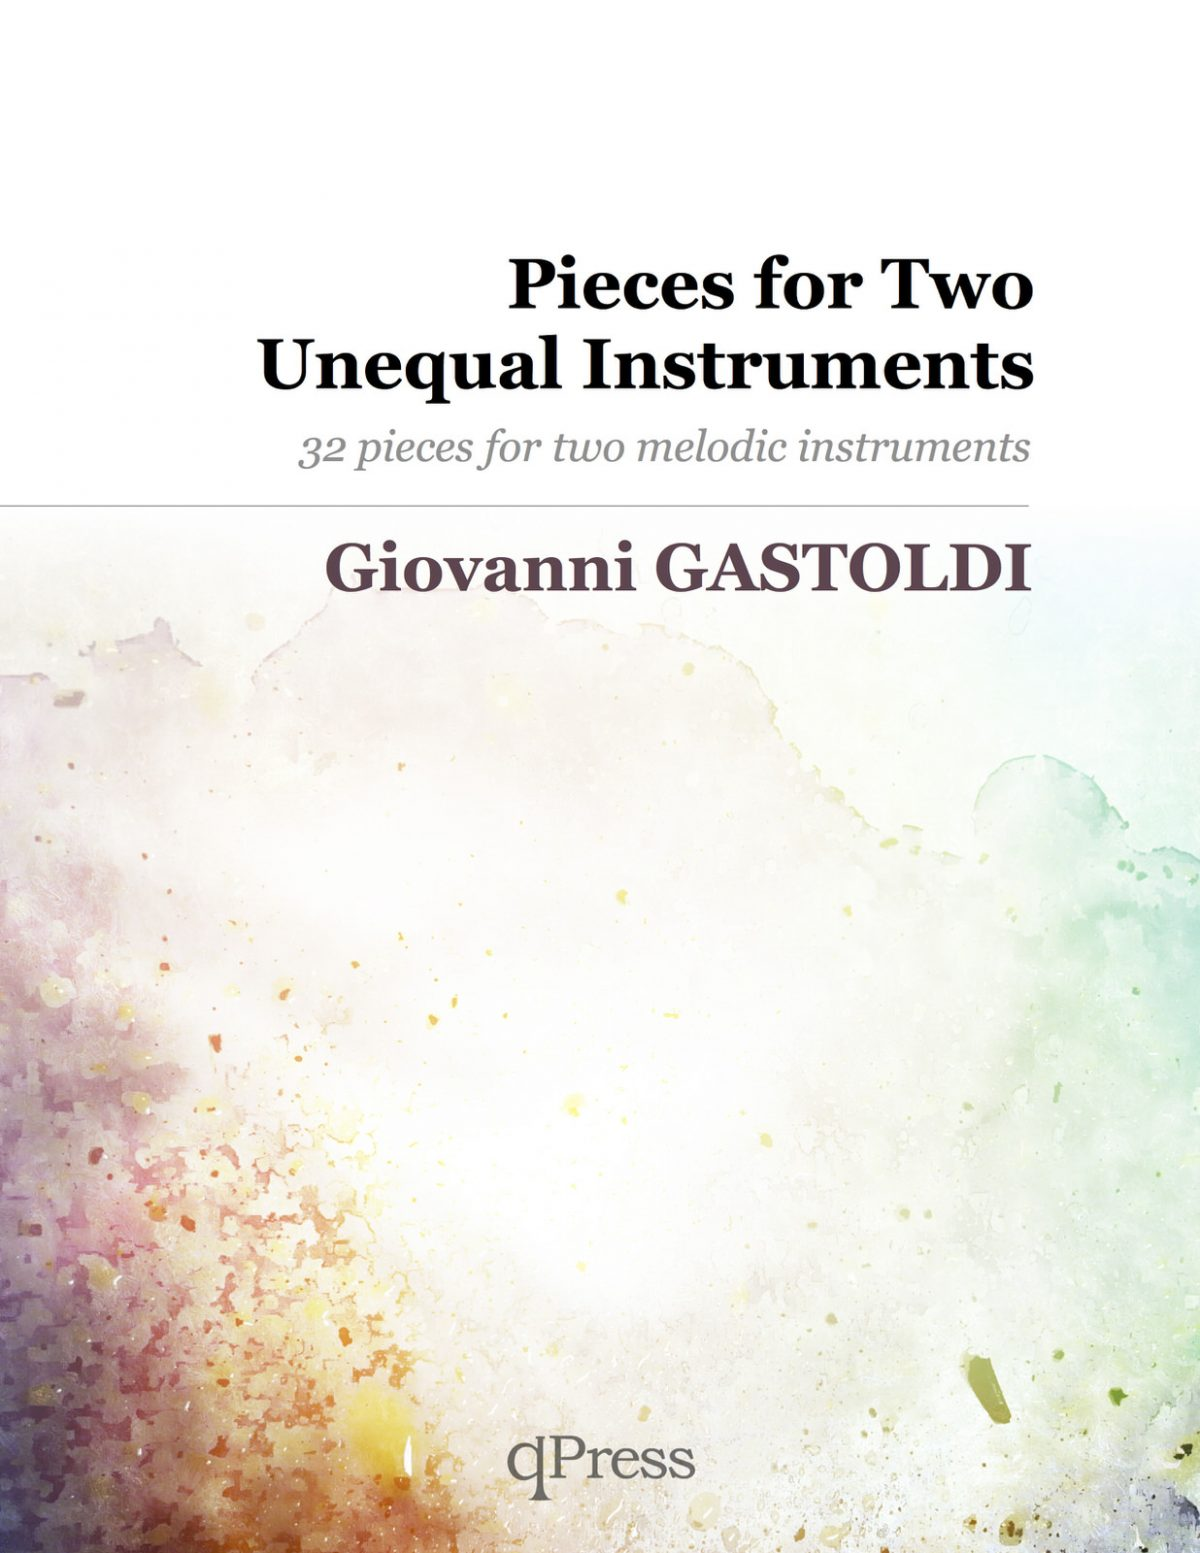 gastoldi-giovanni-giacomo-pieces-for-unequal-instruments